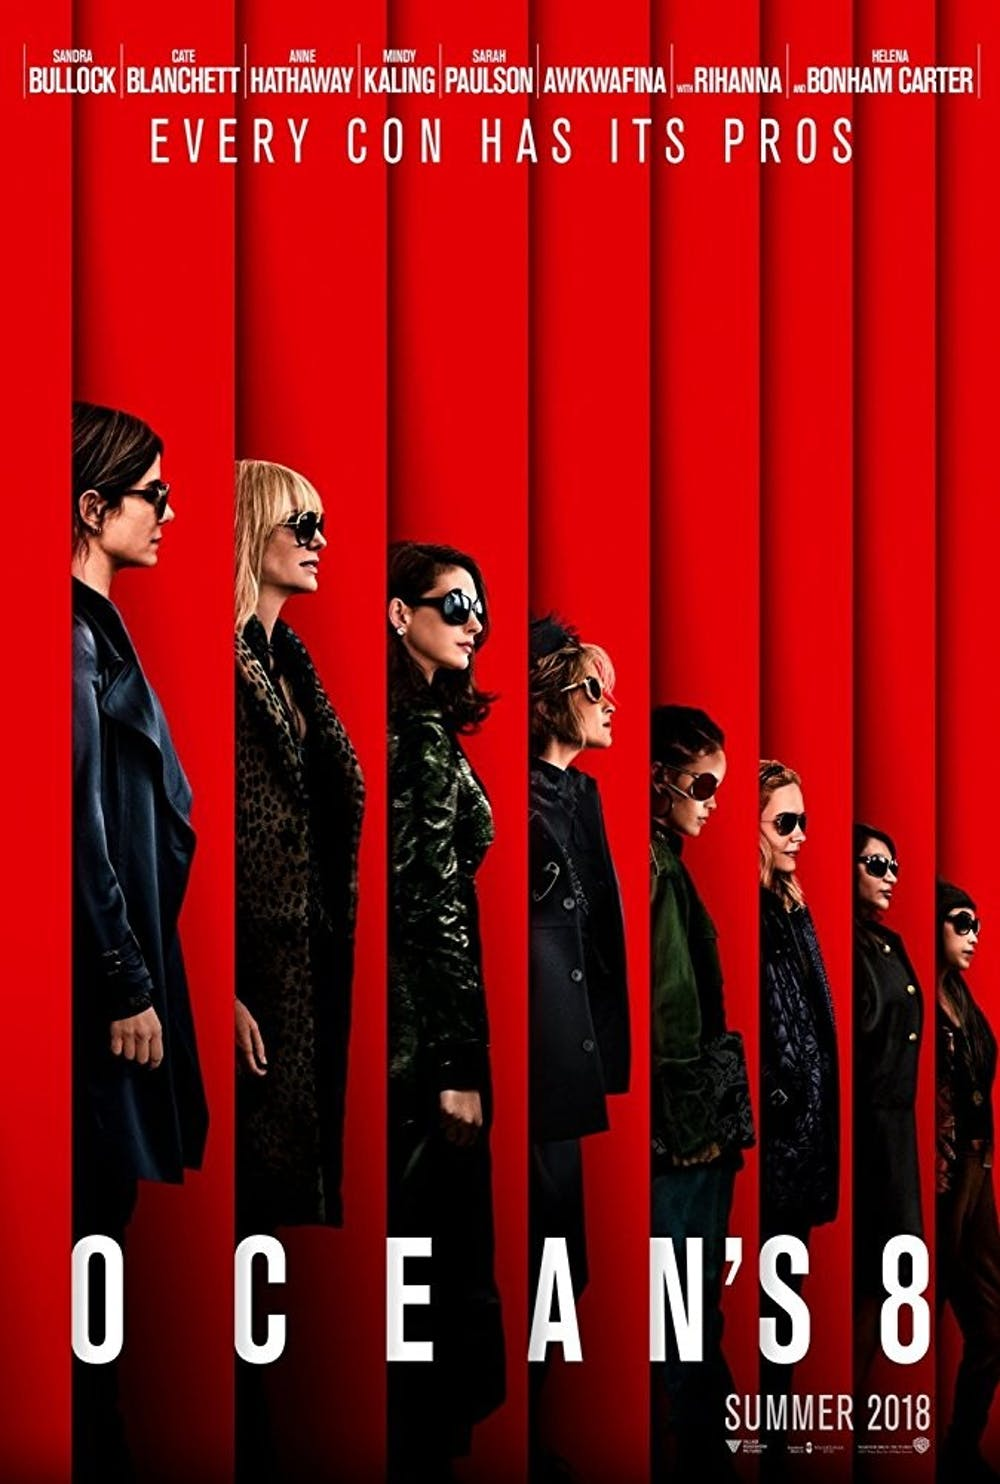 ae-oceans8movieposter-courtesy